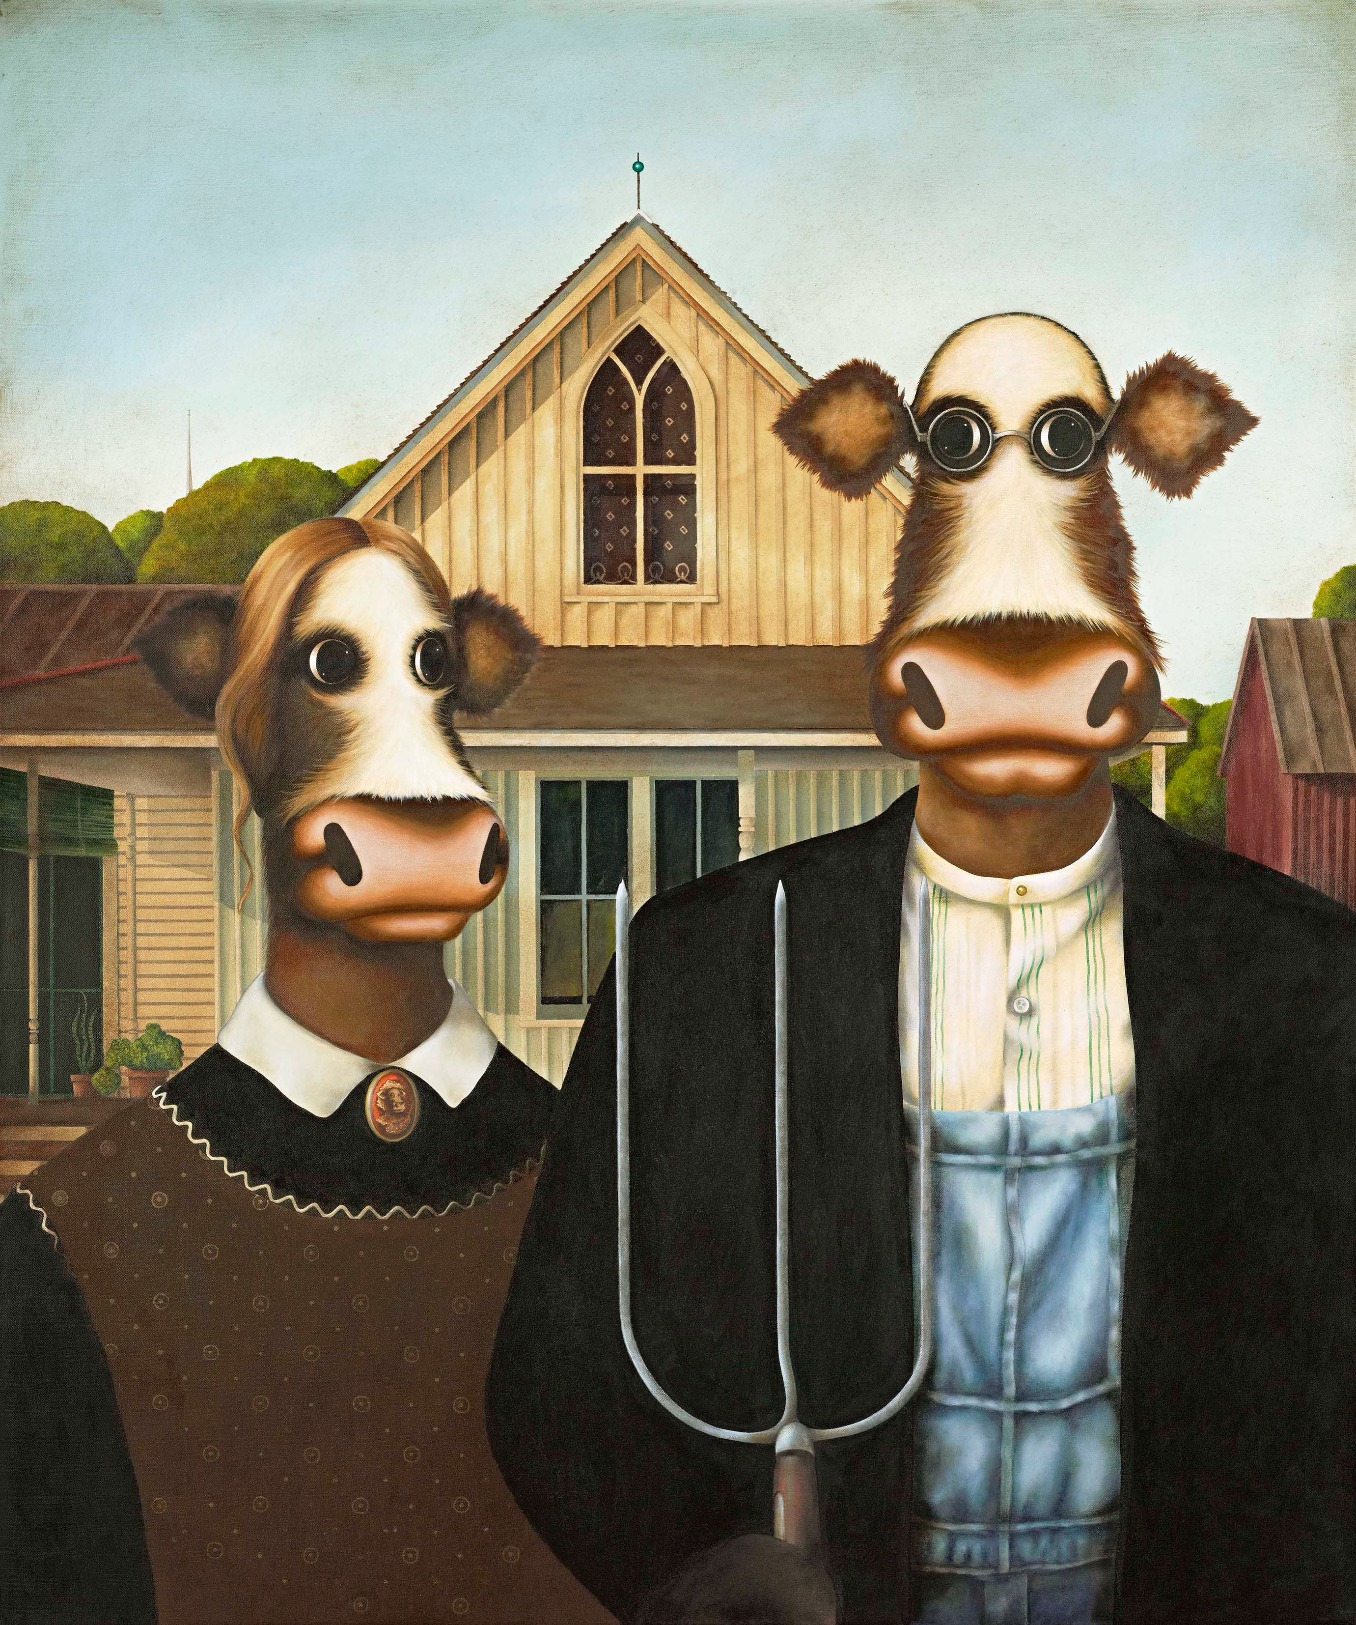 Amoorican Gothic by Caroline Shotton, Cow | Humour